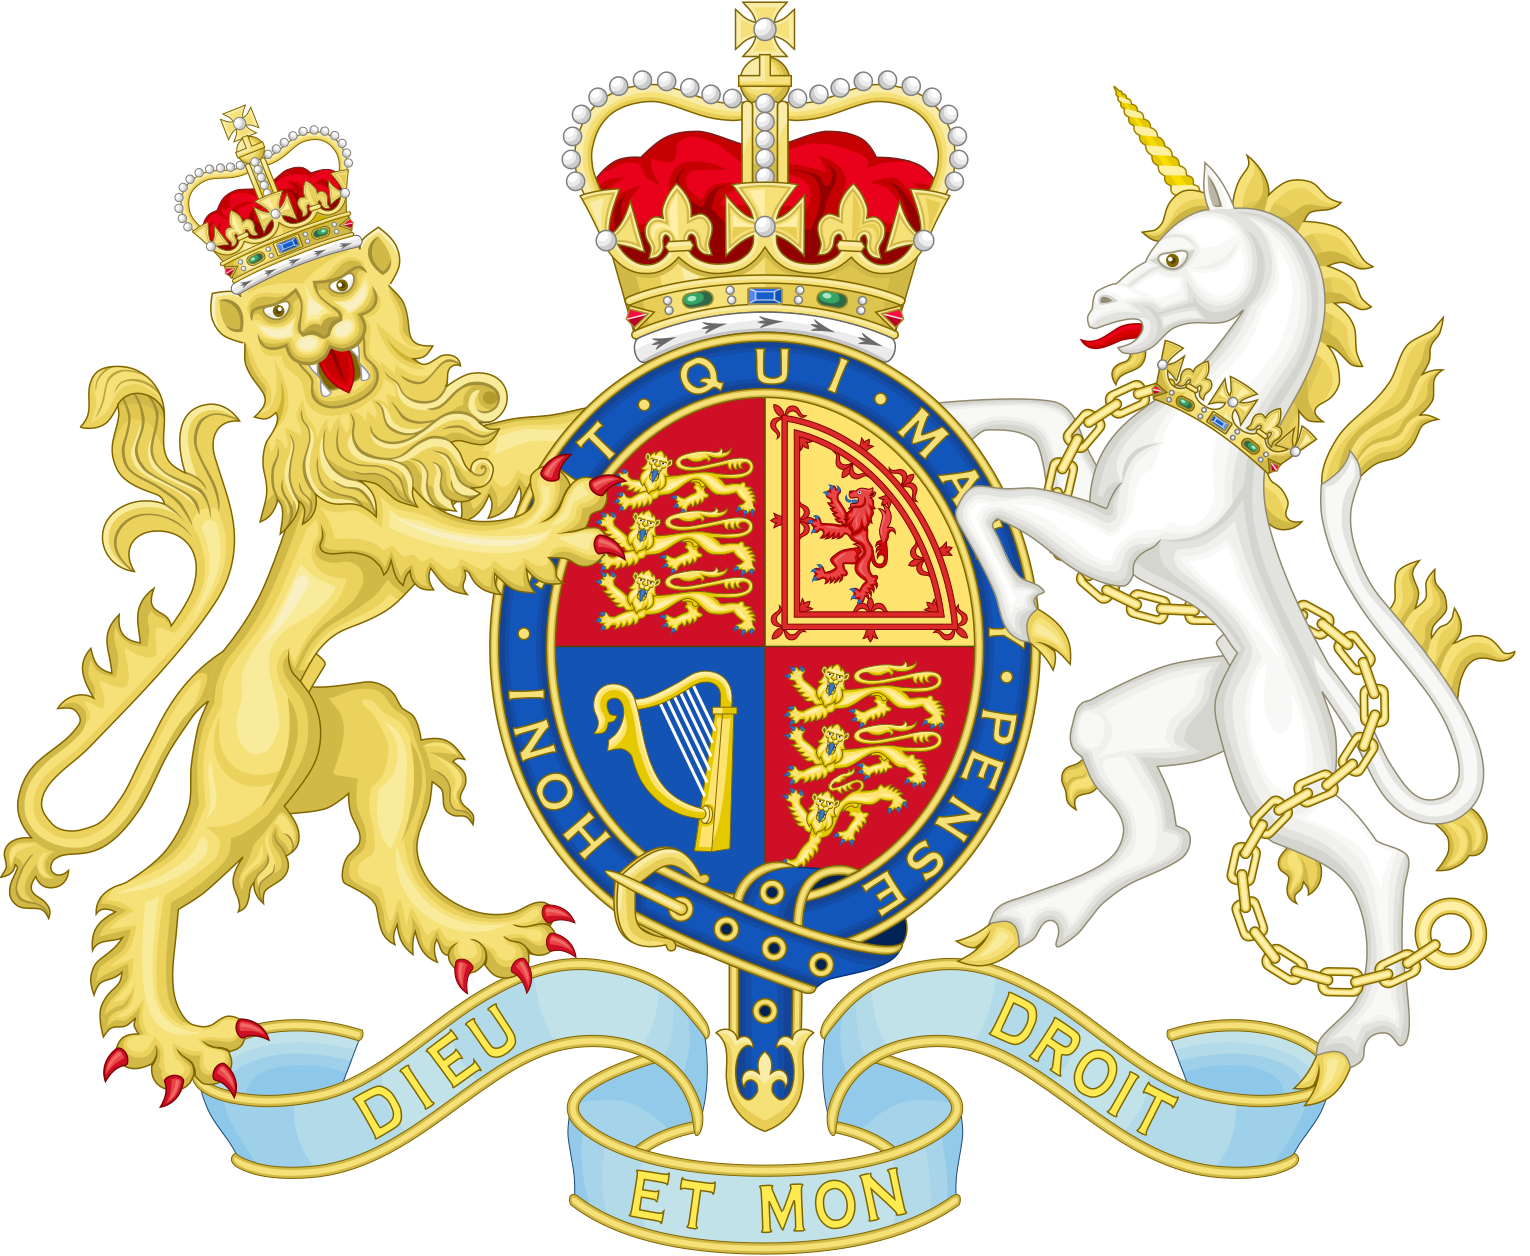 Royal Coat of Arms of the United Kingdom (Her Majesty's Government)